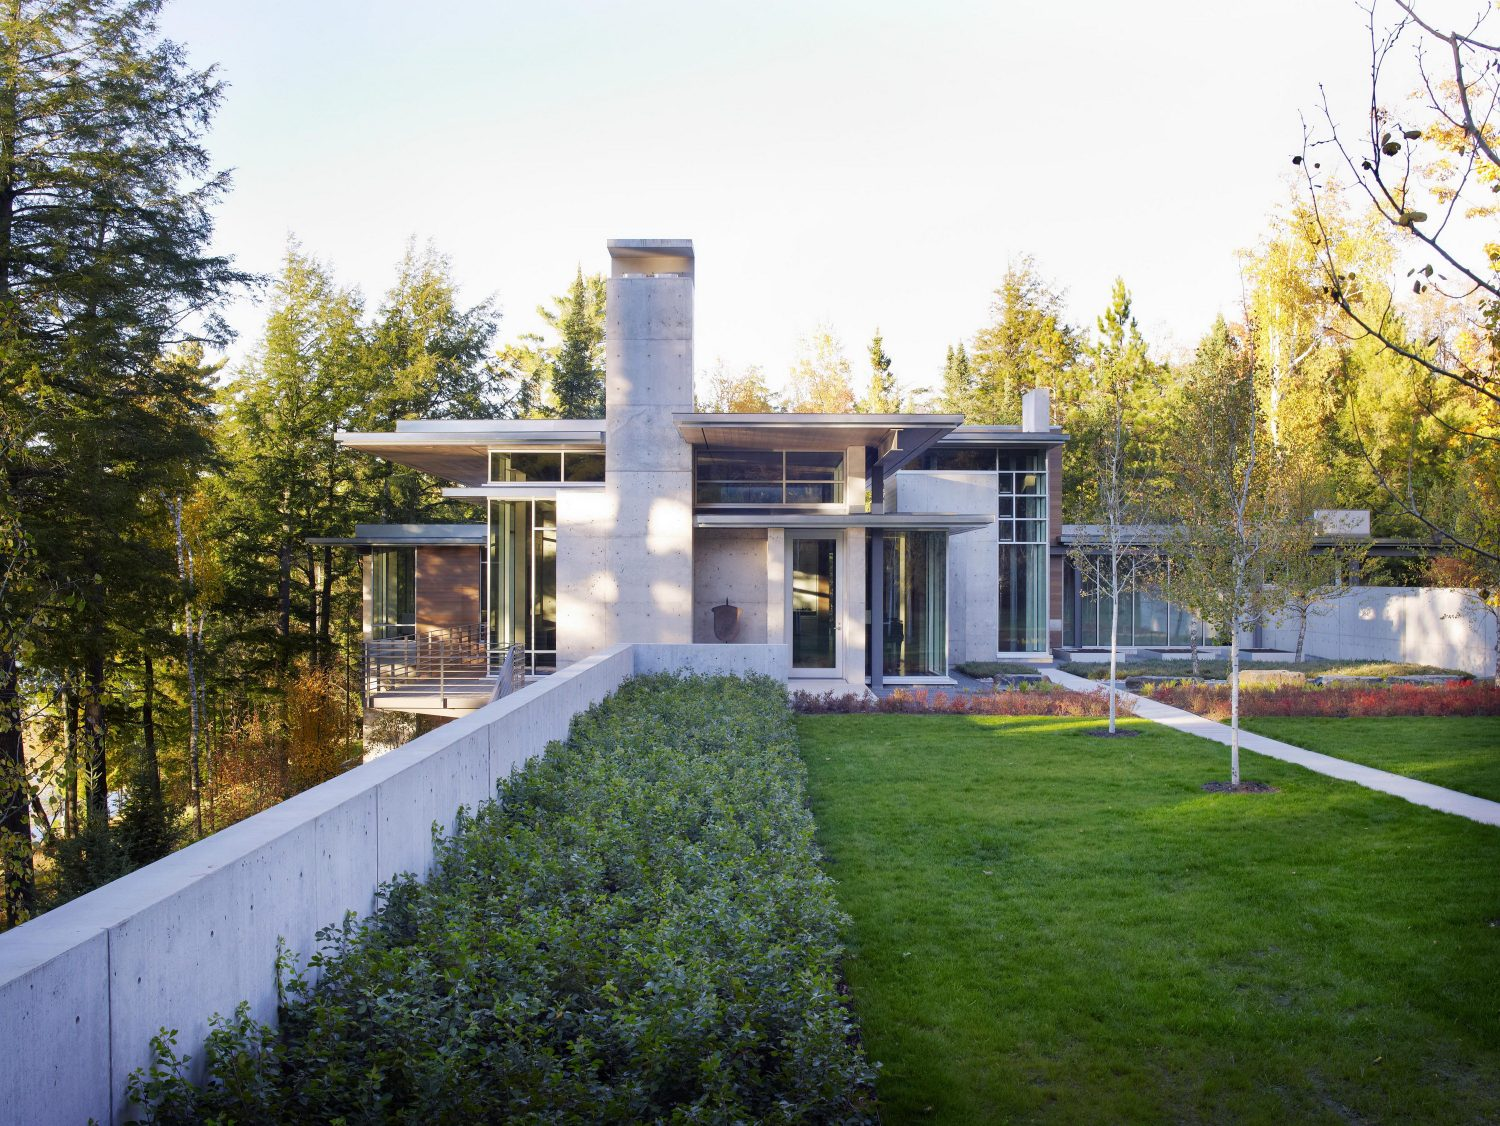 Northwoods House by Olson Kundig